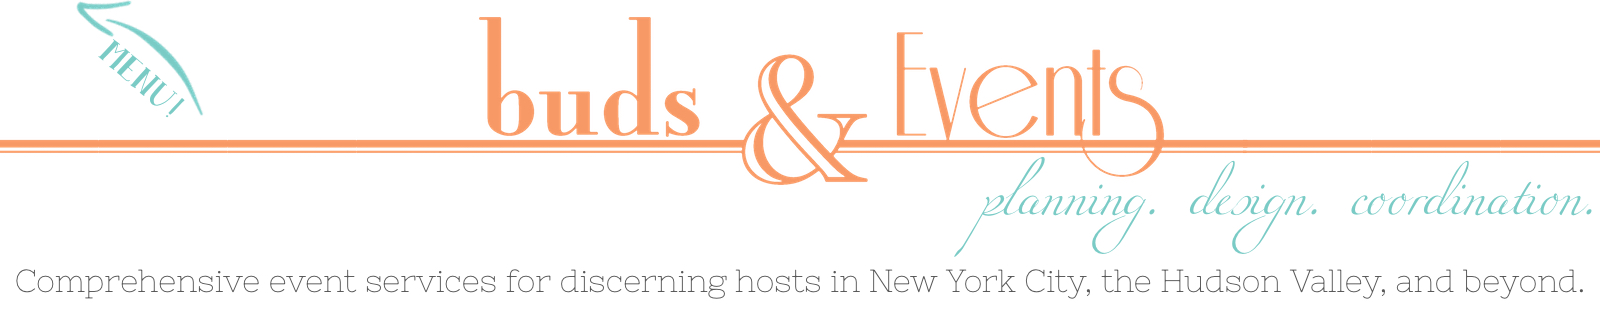 Buds & Events